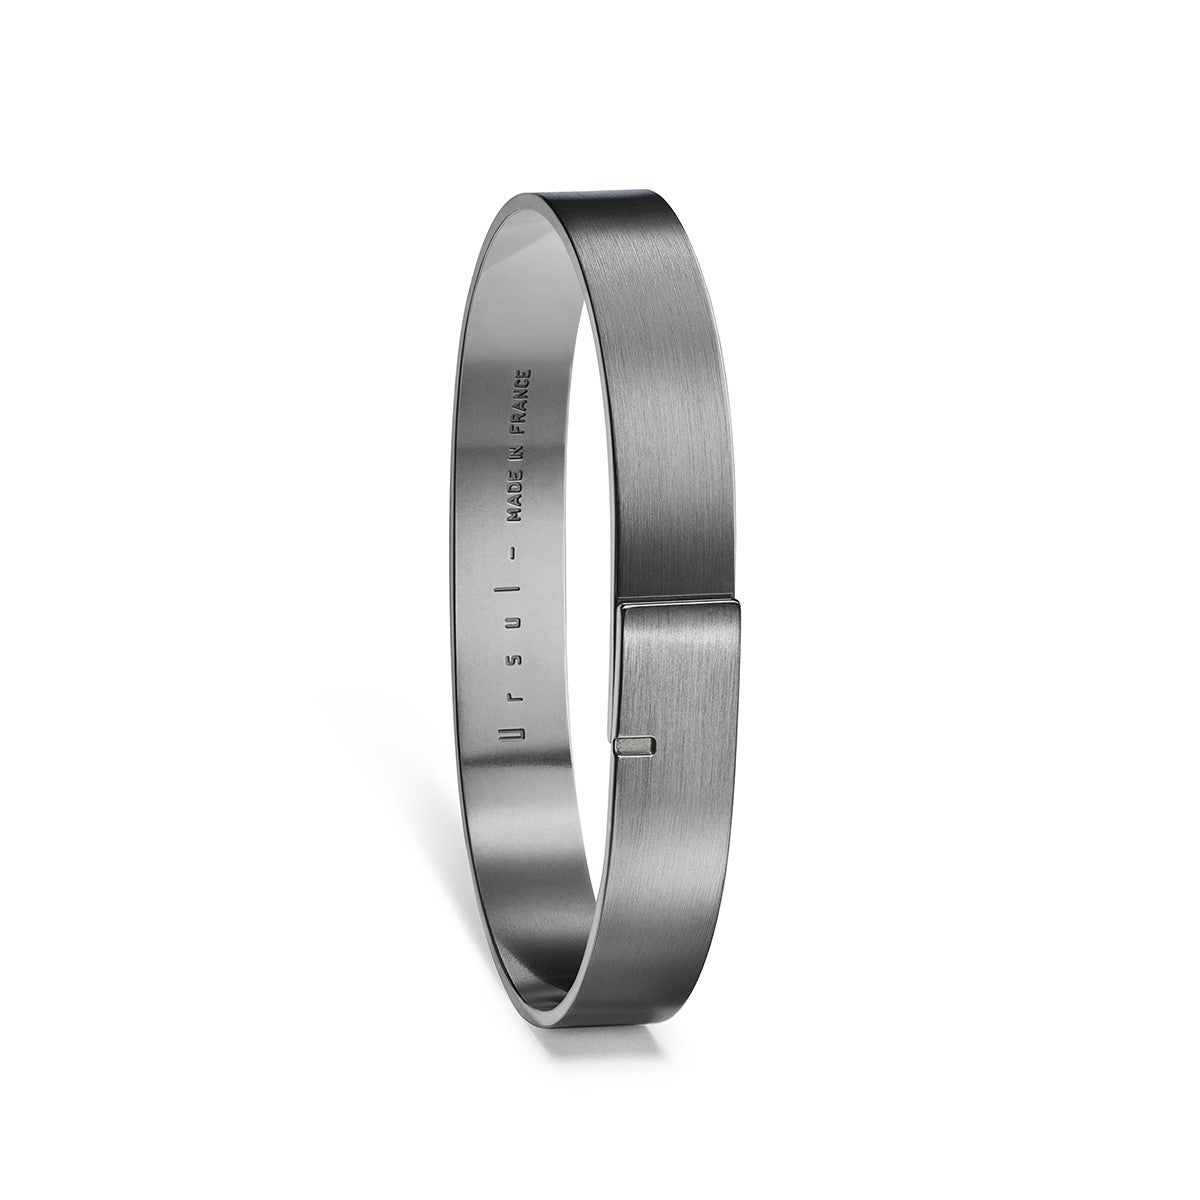 Saturne 9 - Rhutenium Silver Bangle